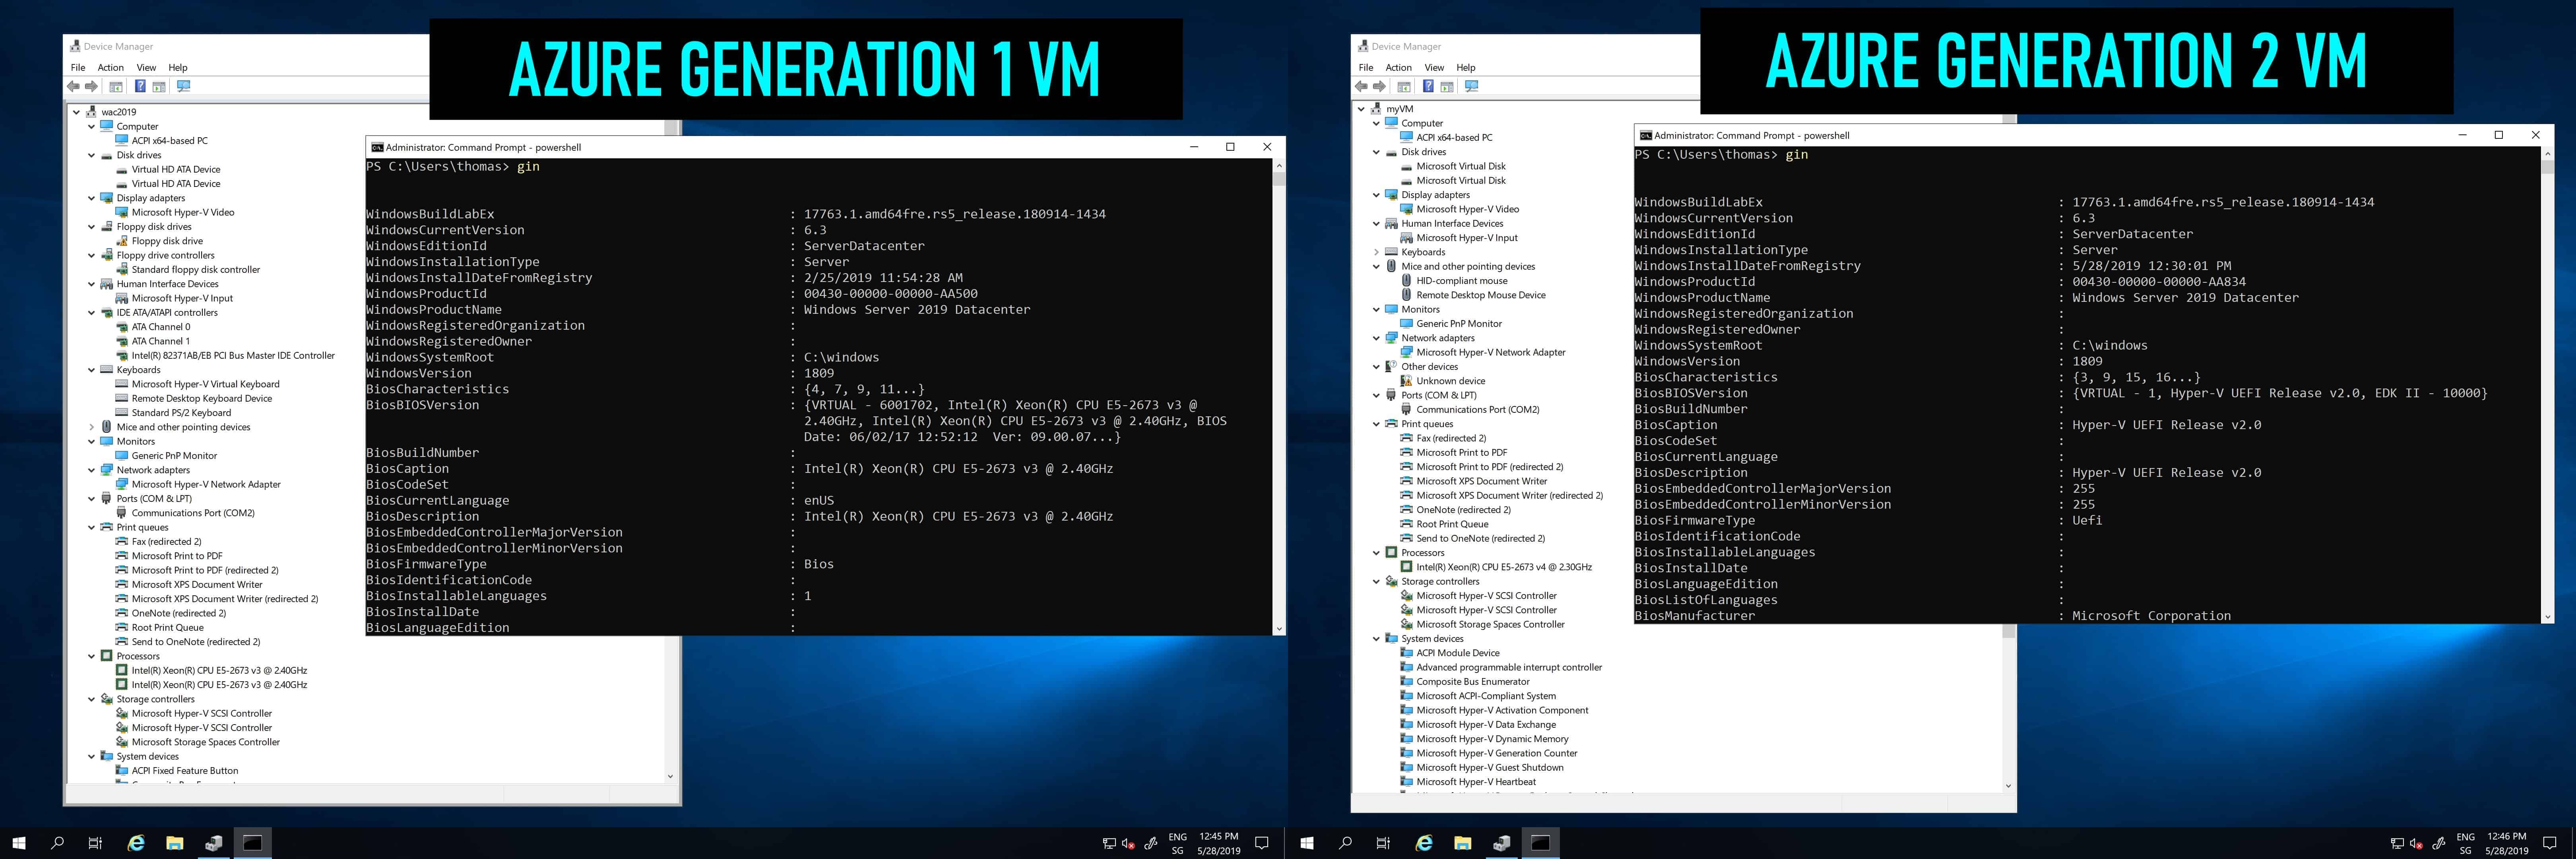 Generation 2 VM support on Azure - and why should I care